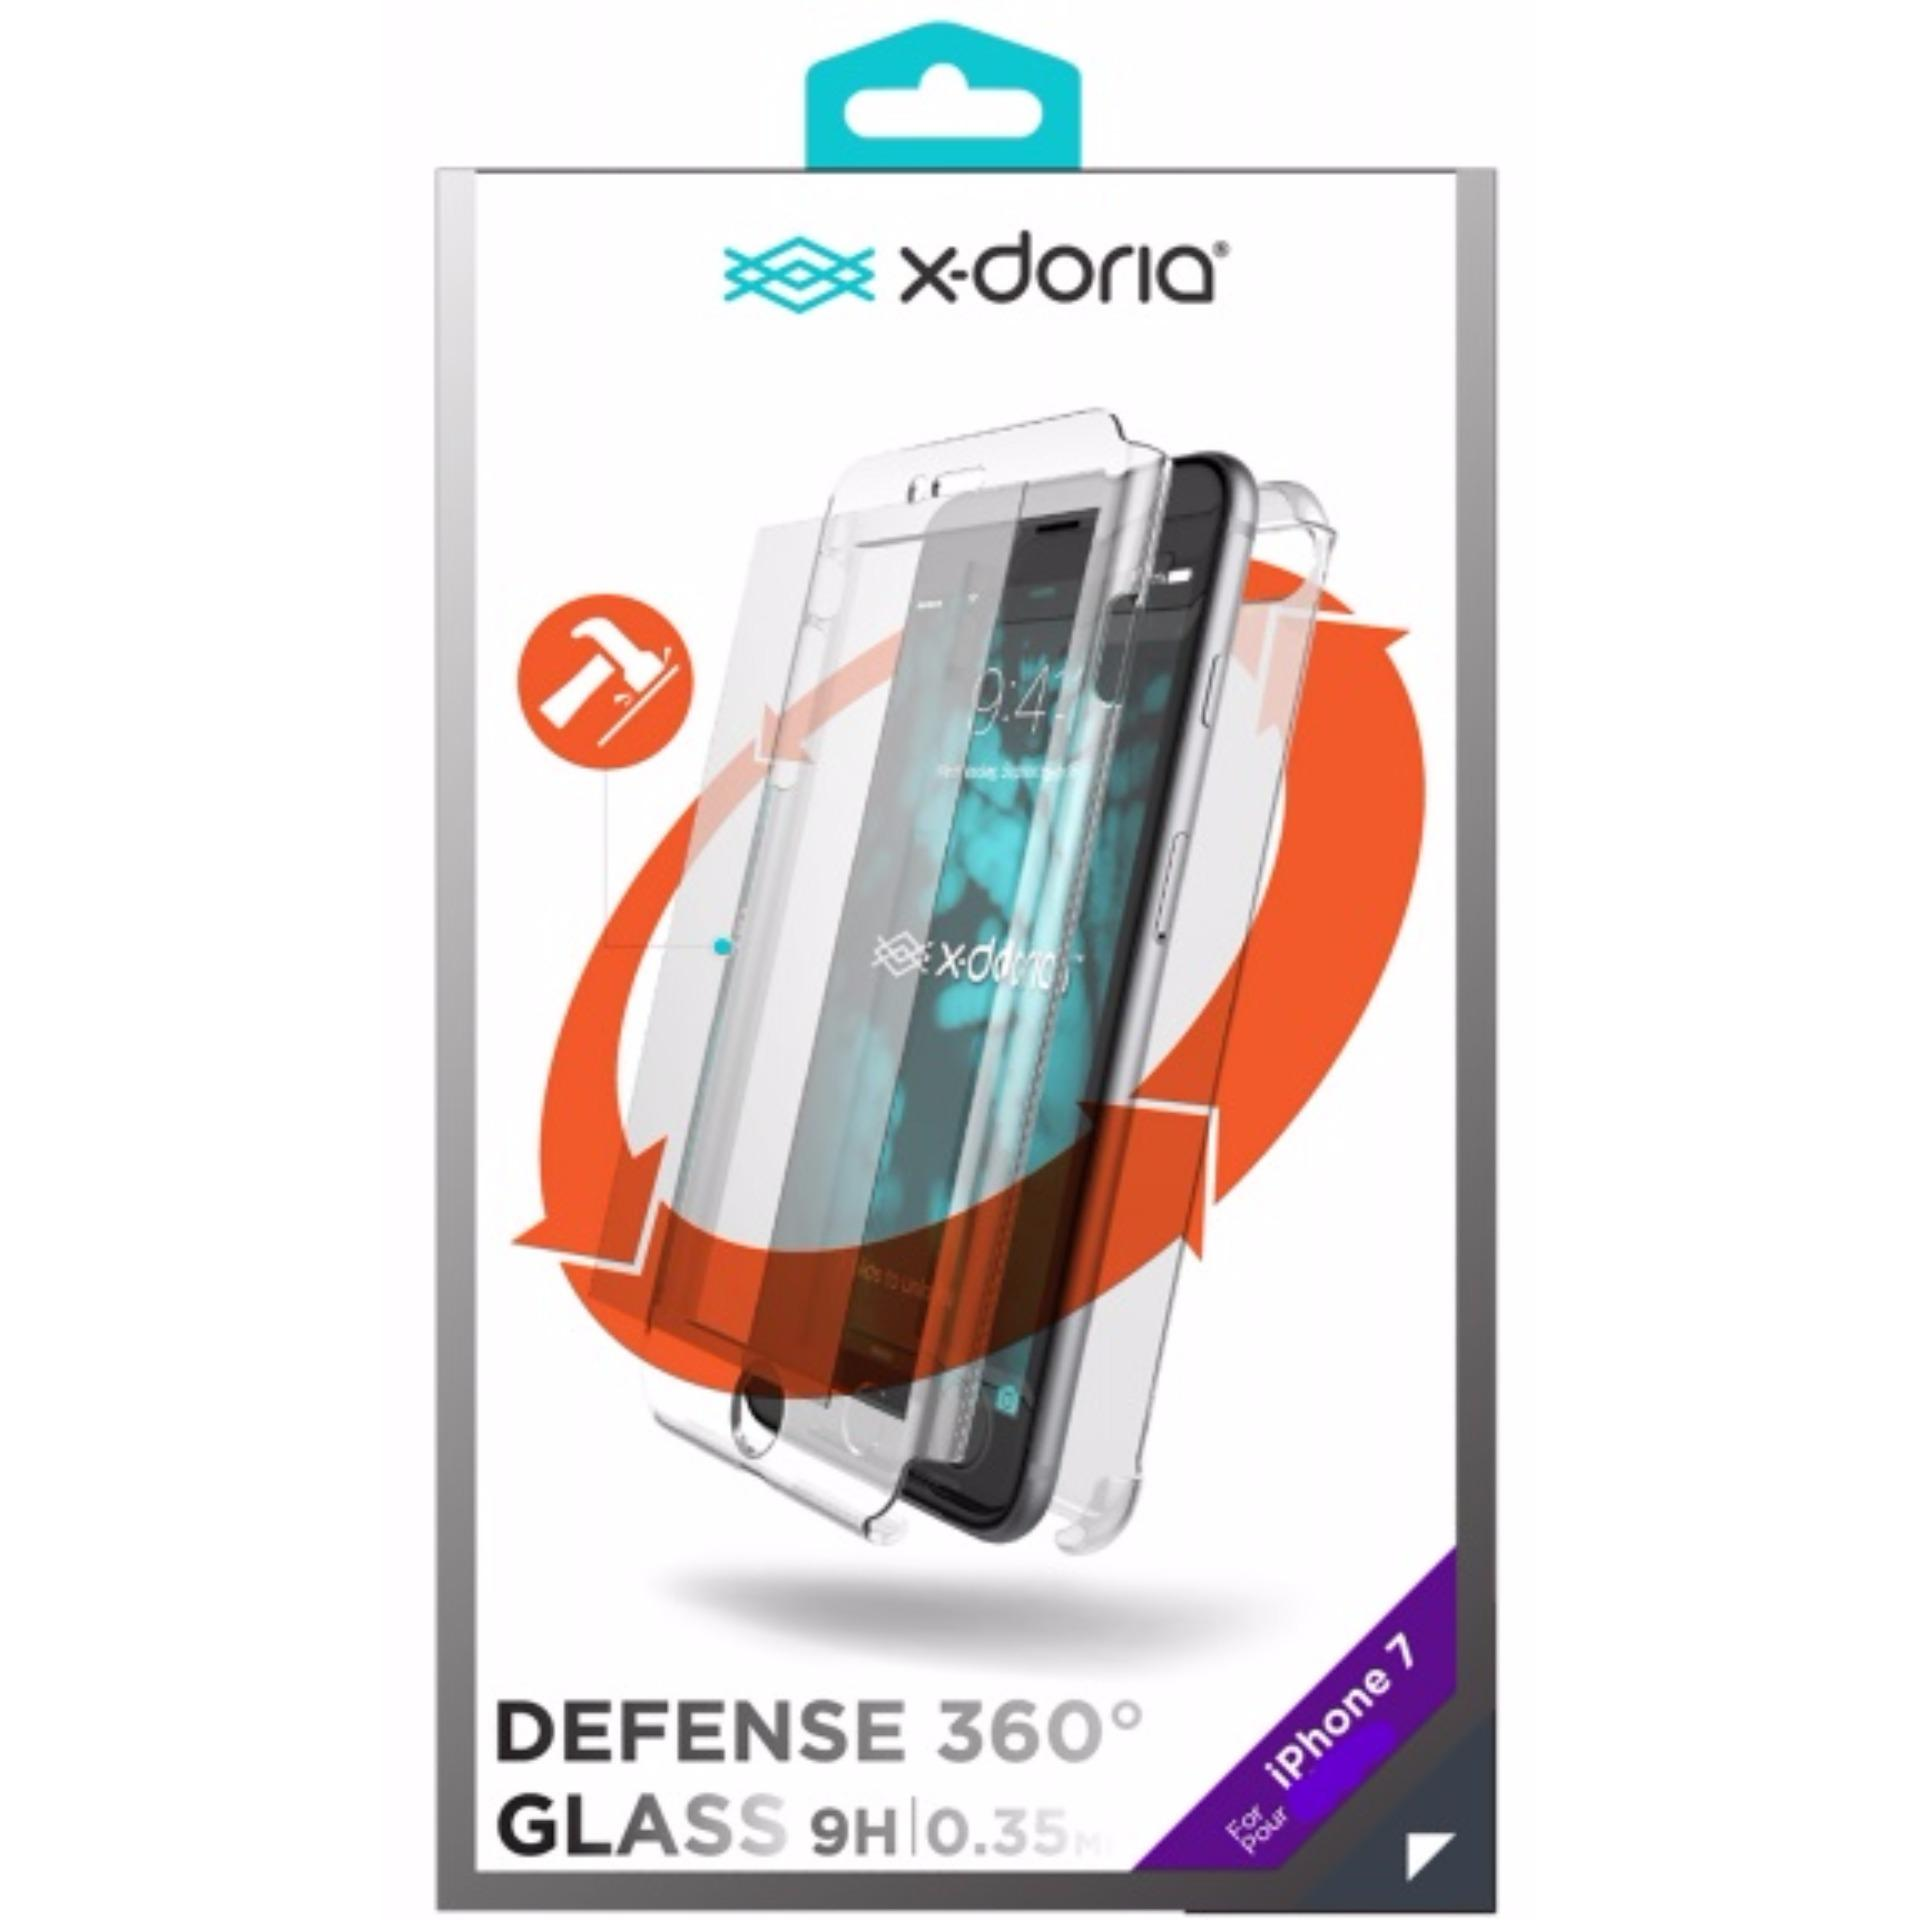 Xdoria iPhone8 / 7 Case Defense Glass 360